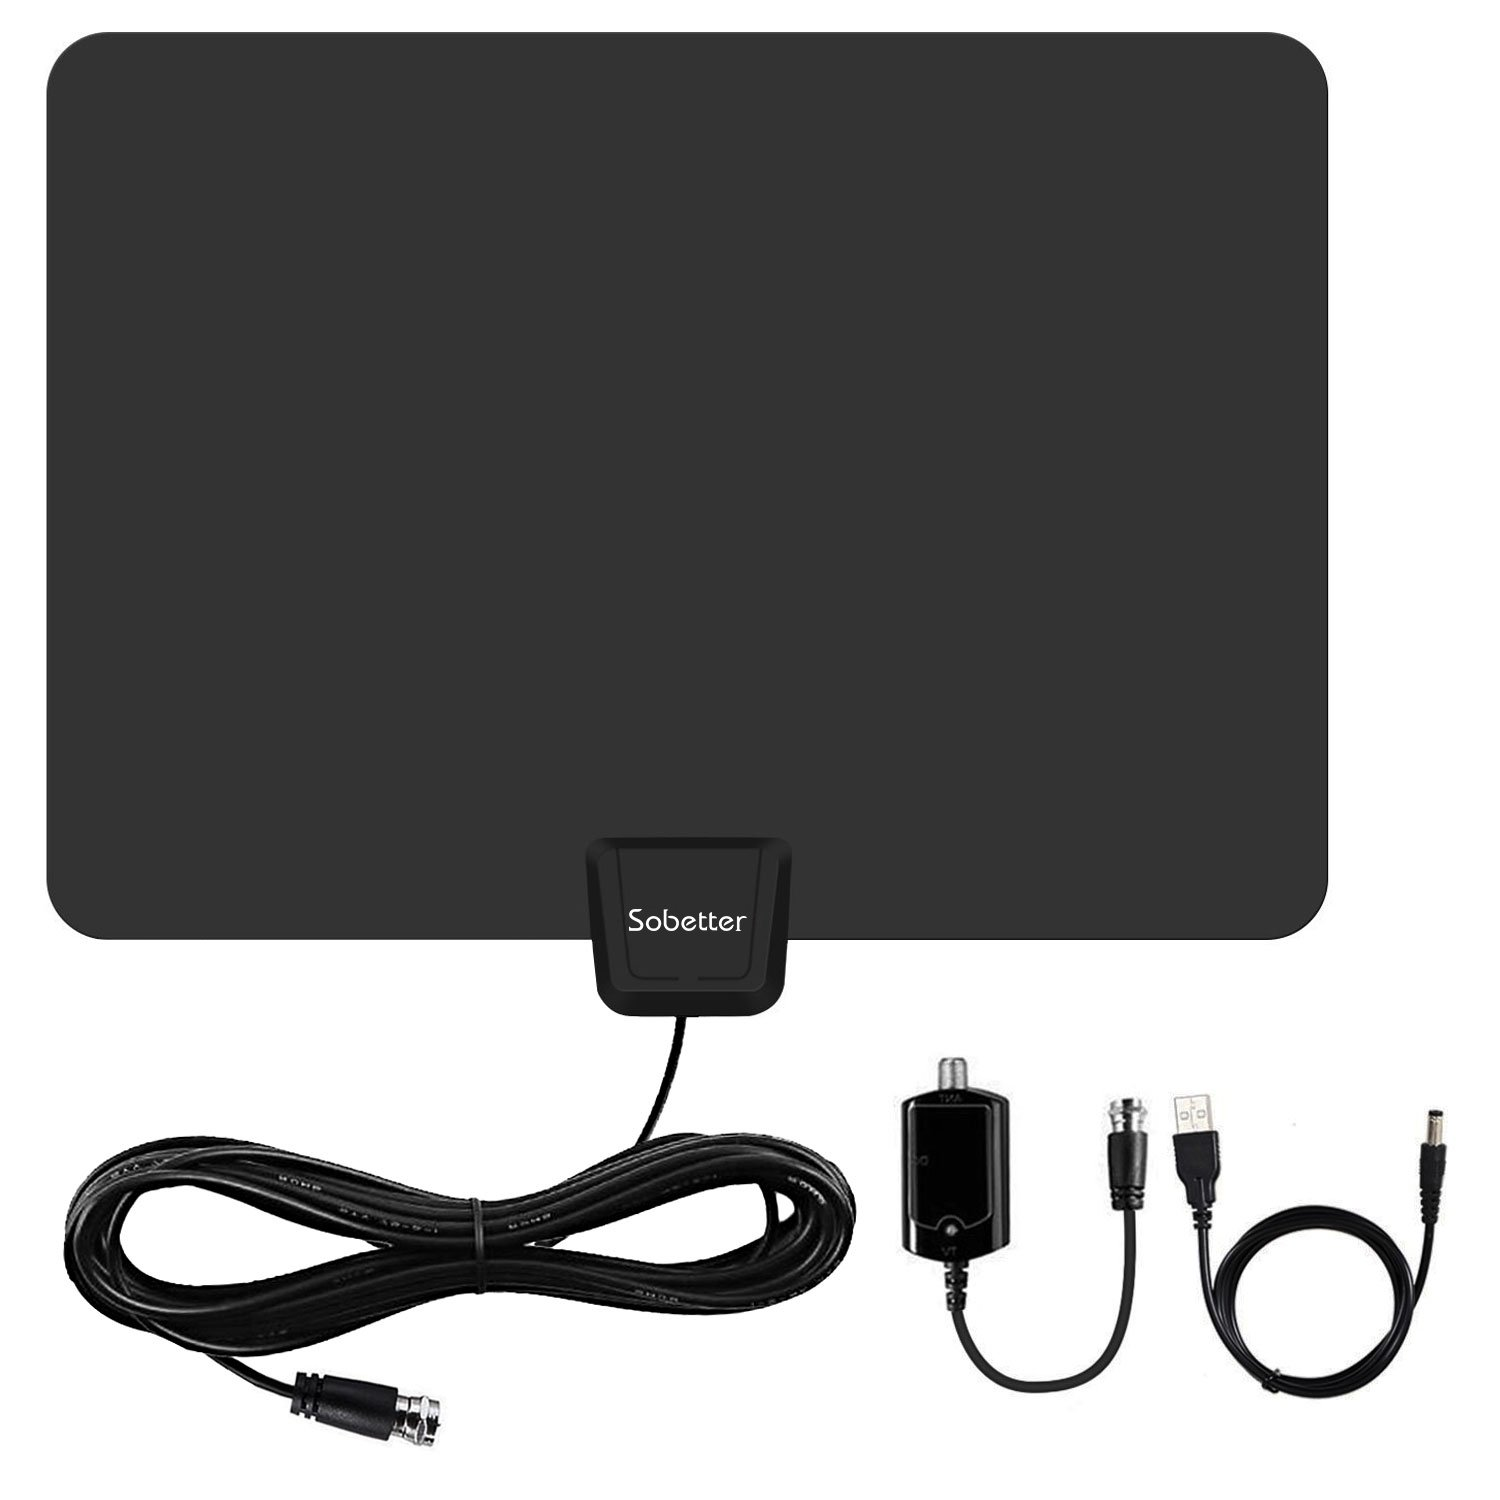 TV Accessories,Amazon.com